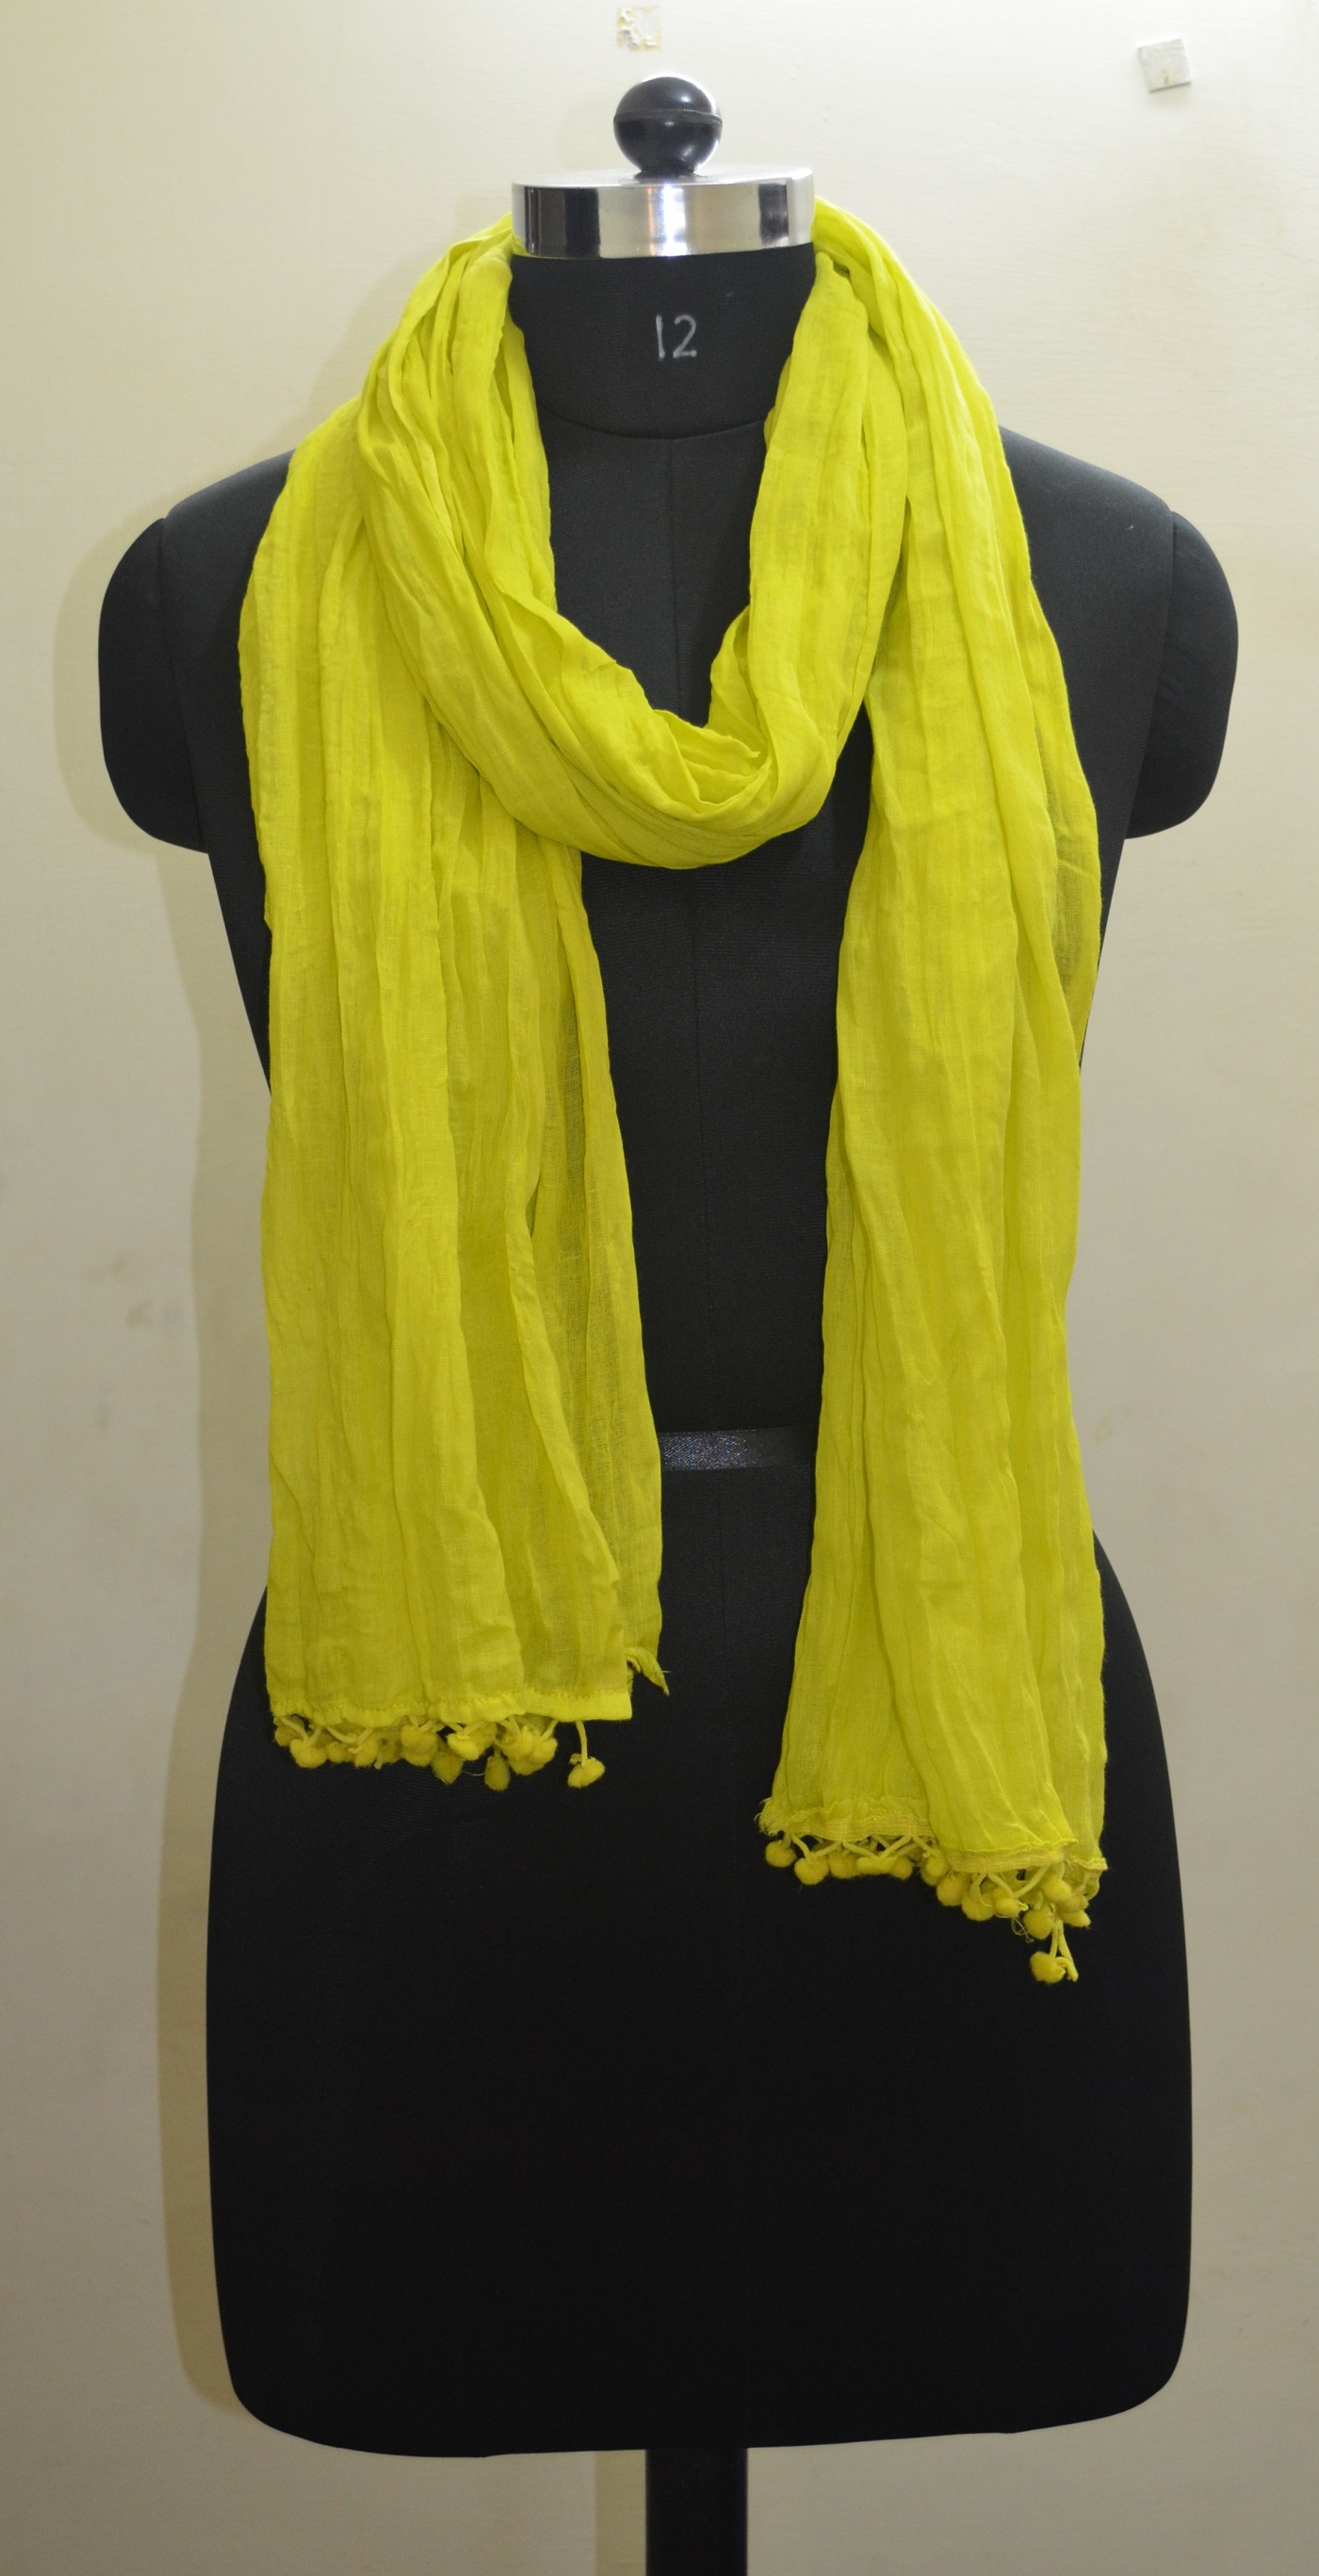 Crinkle Cotton Scarf Duppatta Girls Shawl Neck Wrap Hijab Scarf Yellow SCA 02-08